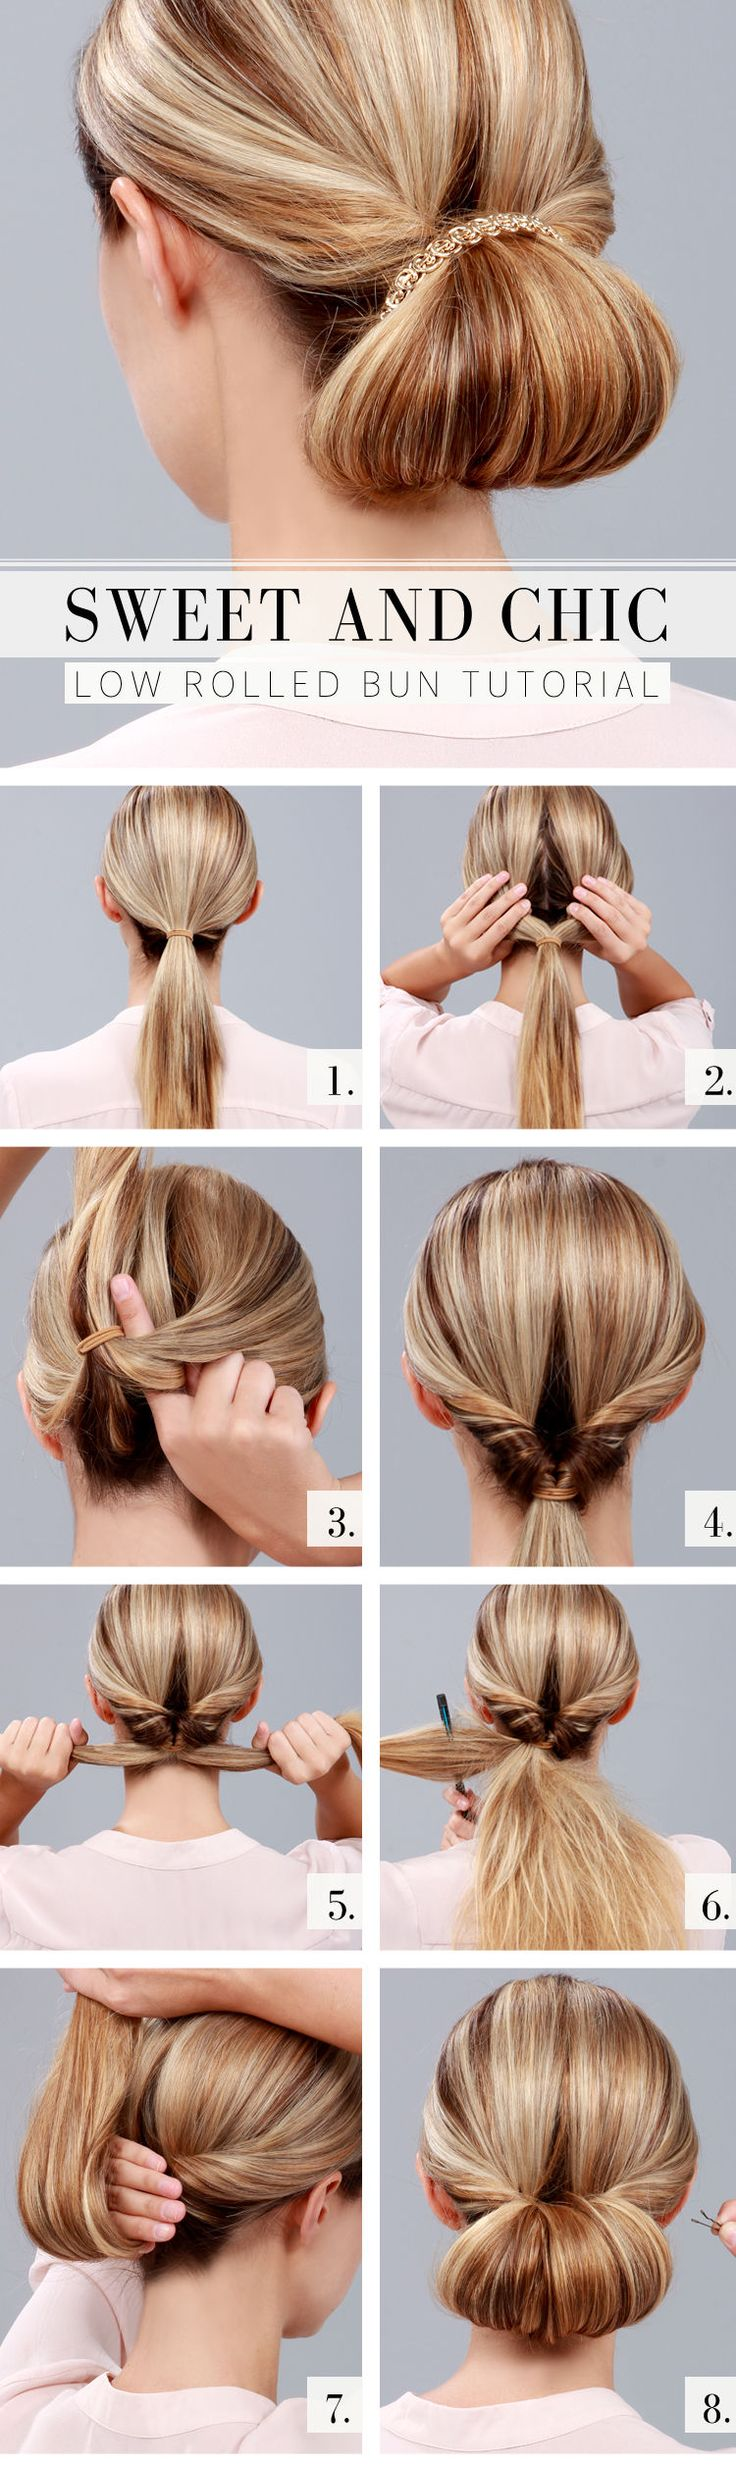 DIY Low Rolled Bun Tutorial